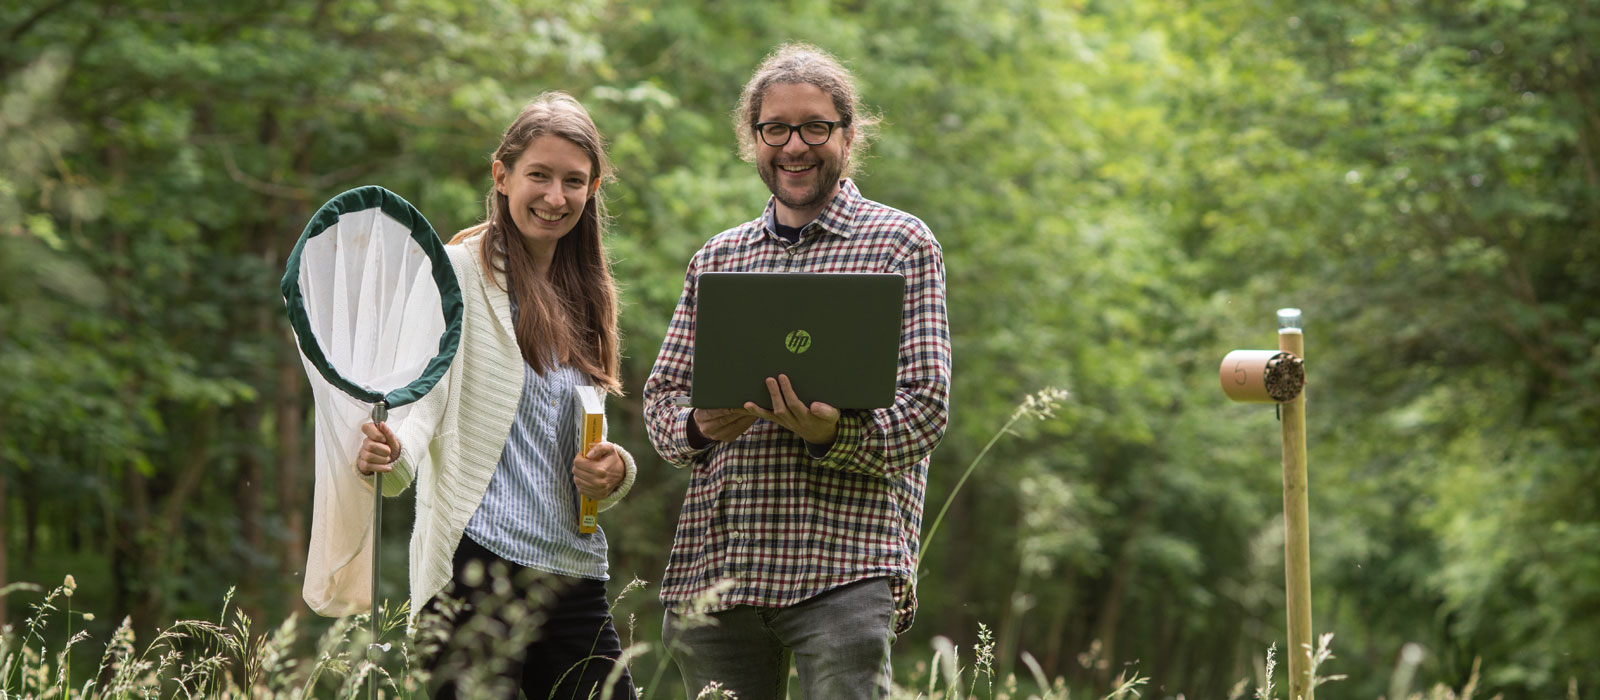 Dr Matthias Becher and Sabrina Dietz in Wytham Woods. Photo by John Cairns.